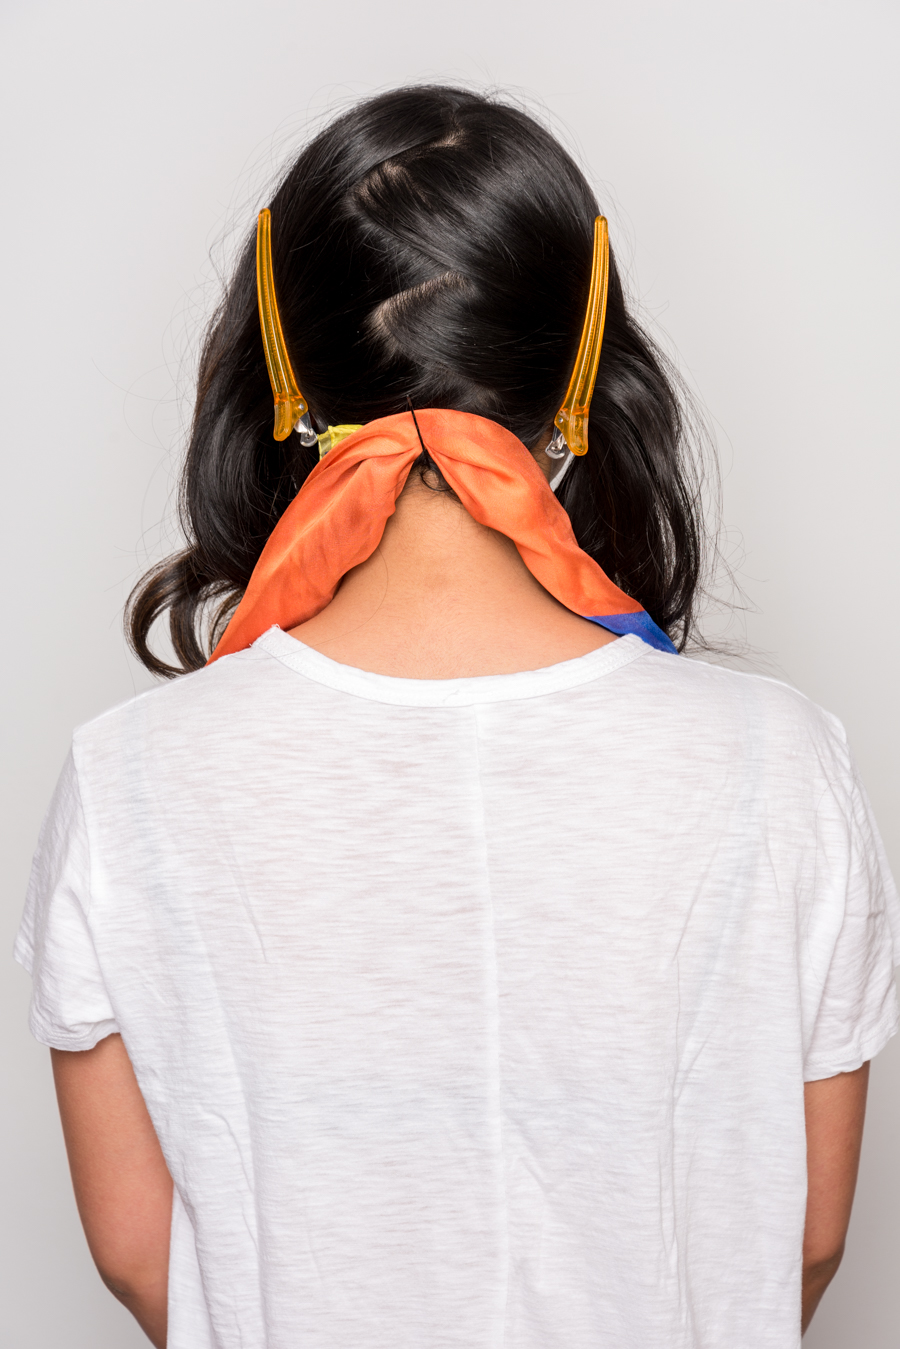 How To Use A Scarf For Stylish Summer Hair スカーフを使った簡単ヘアアレンジ 5